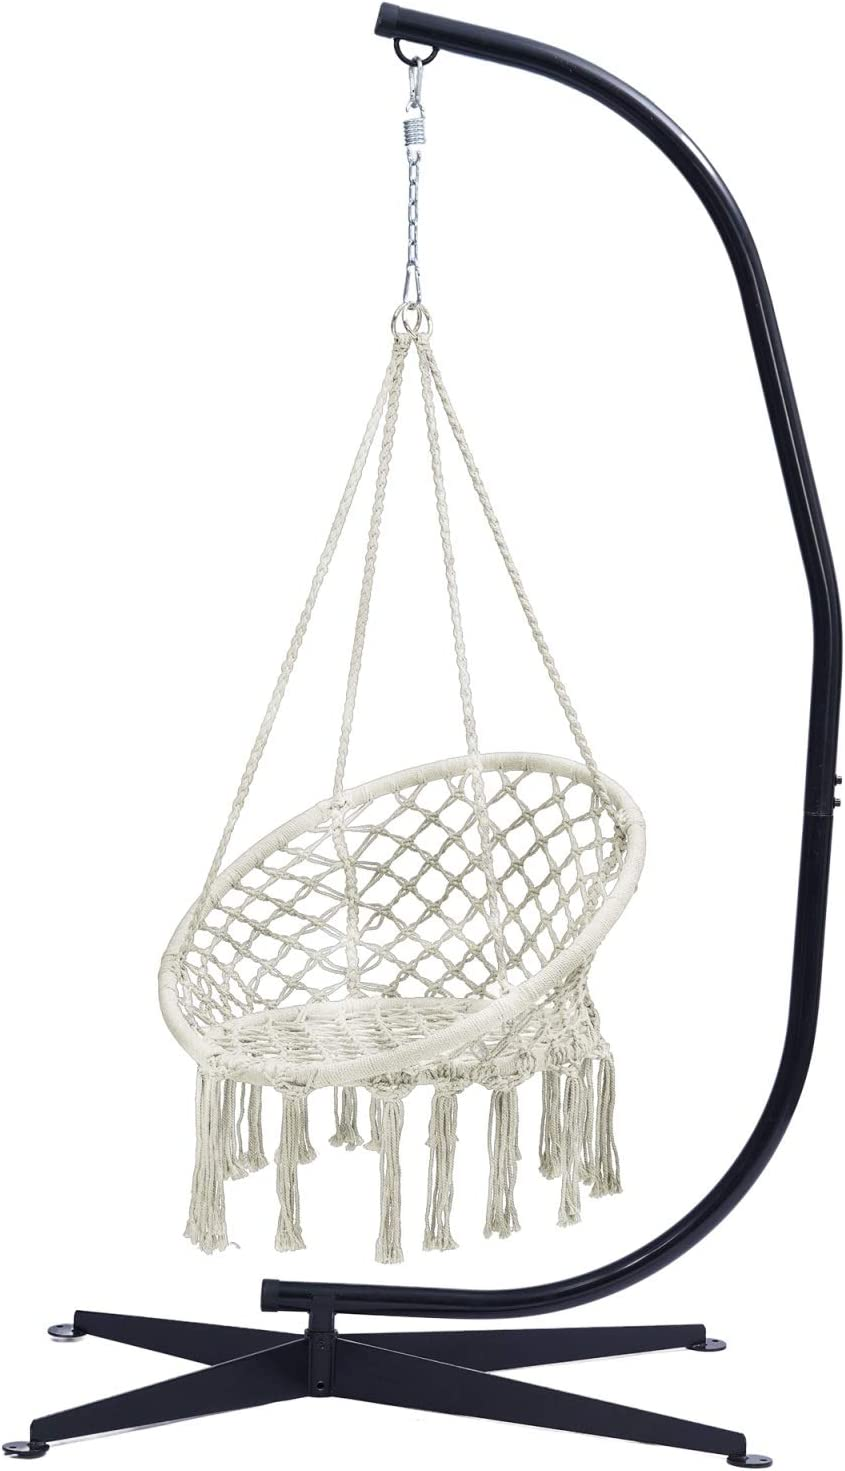 FQX Hammock Max 77% OFF Chair with Stand We OFFer at cheap prices Swing Rope Hanging Cotton